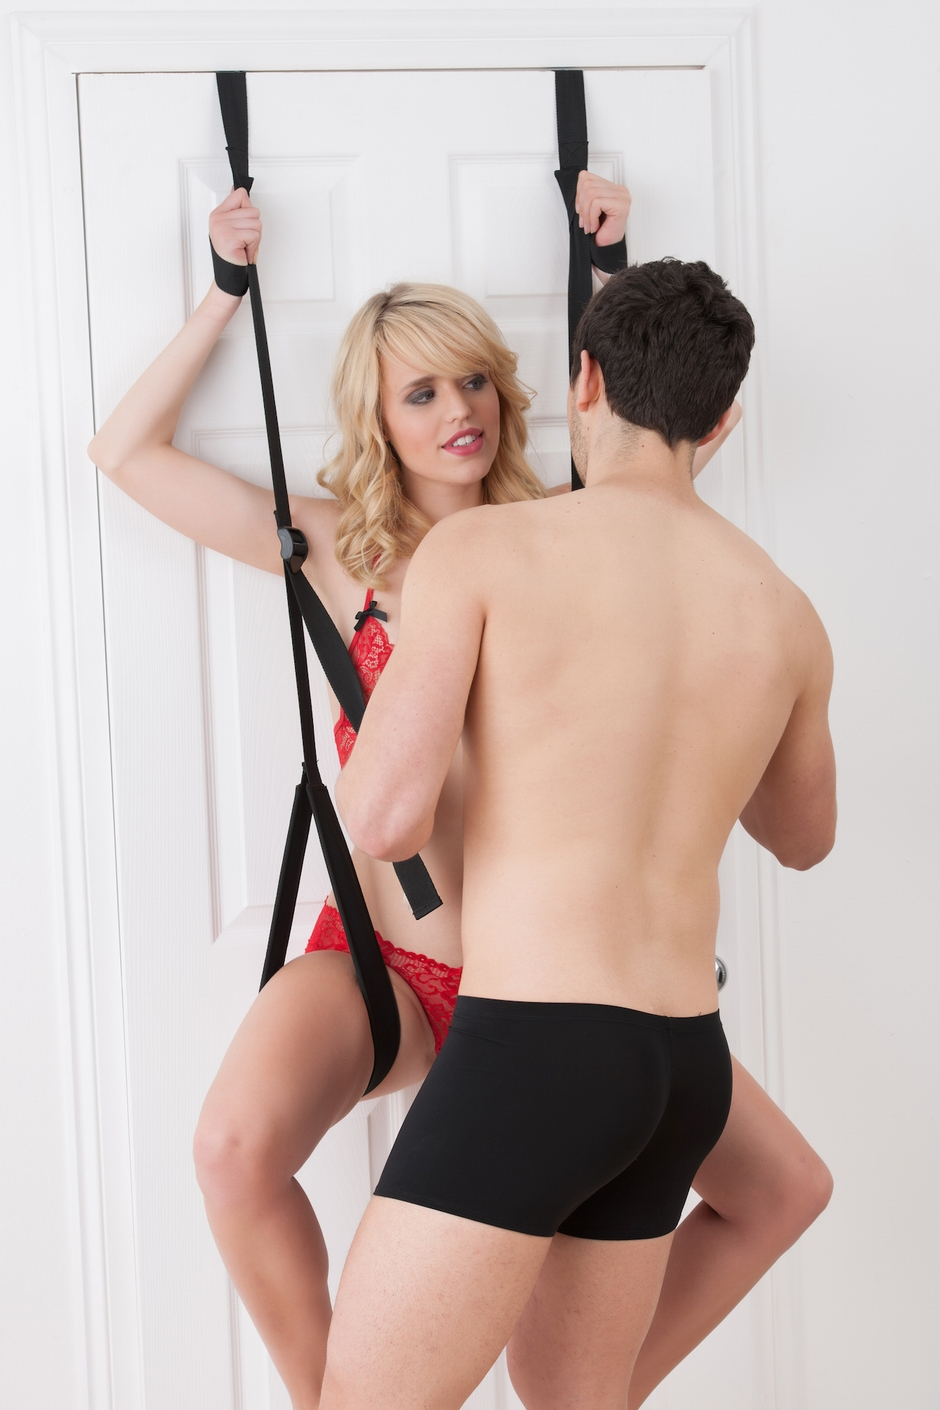 Bondage Boutique Final Image